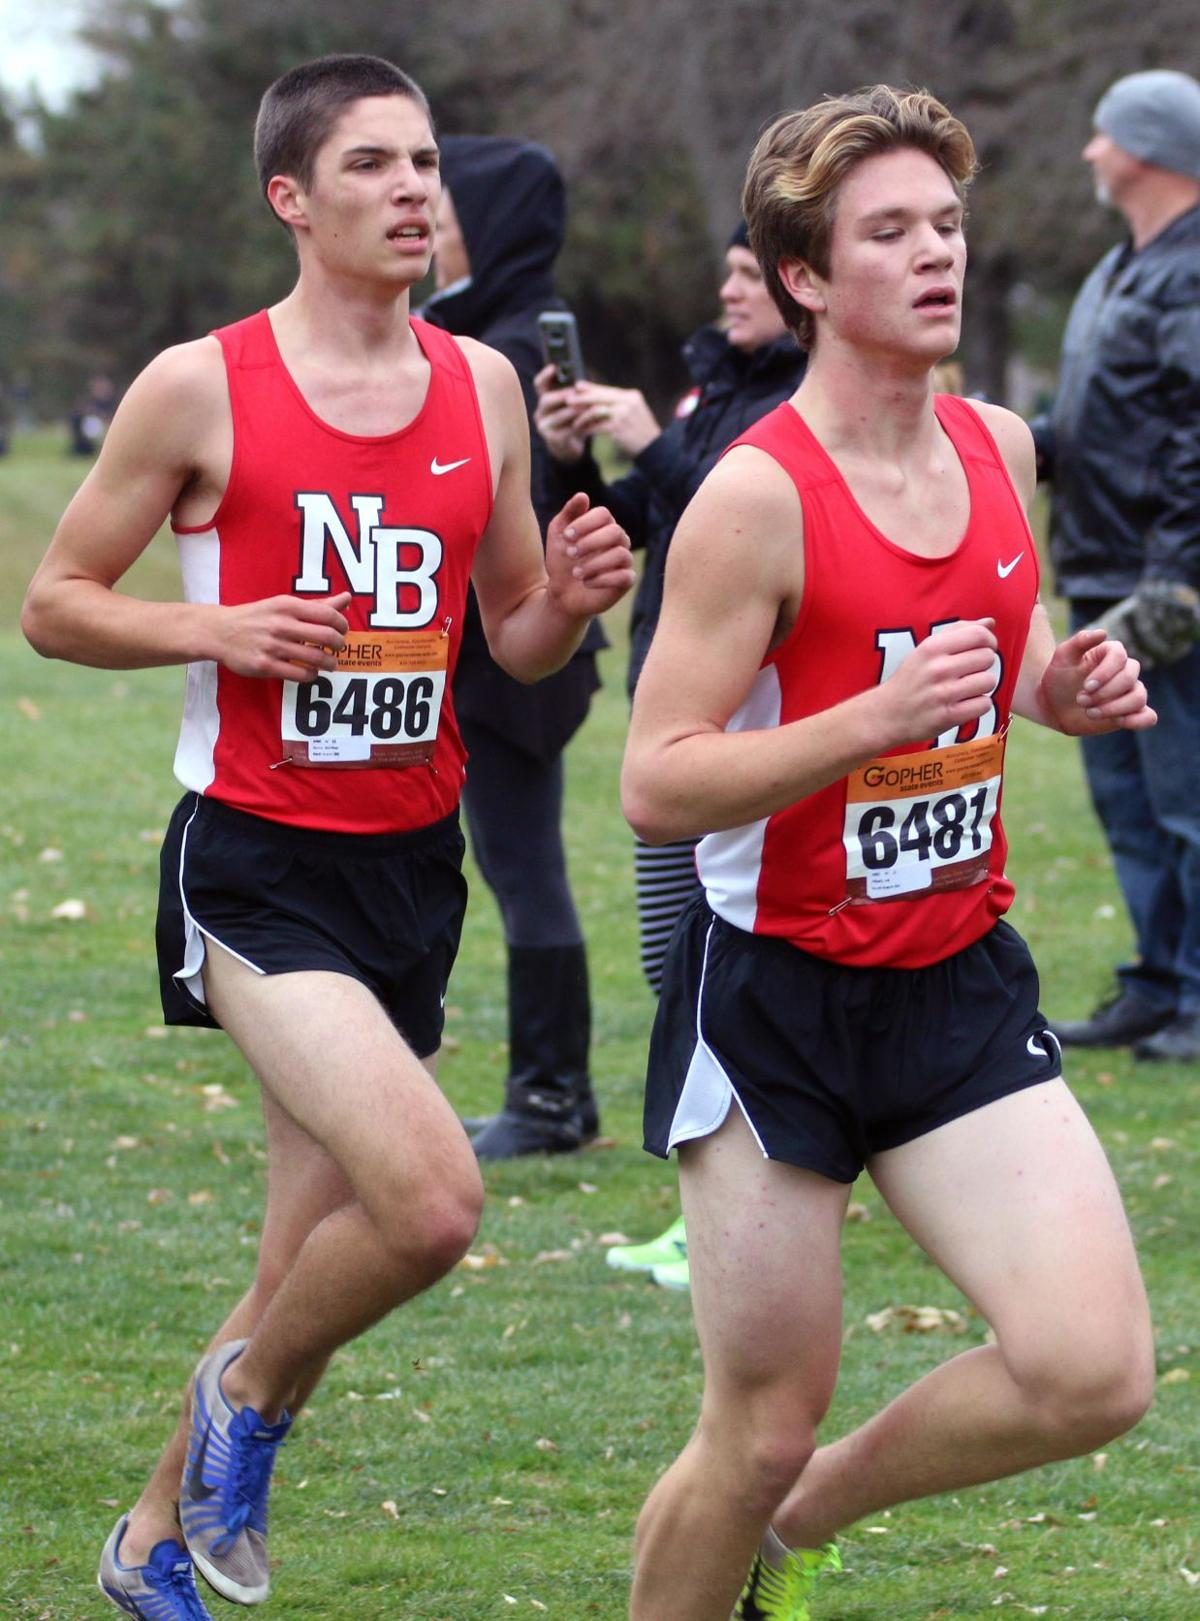 Vikings, Bluejackets send two to state cross country meet